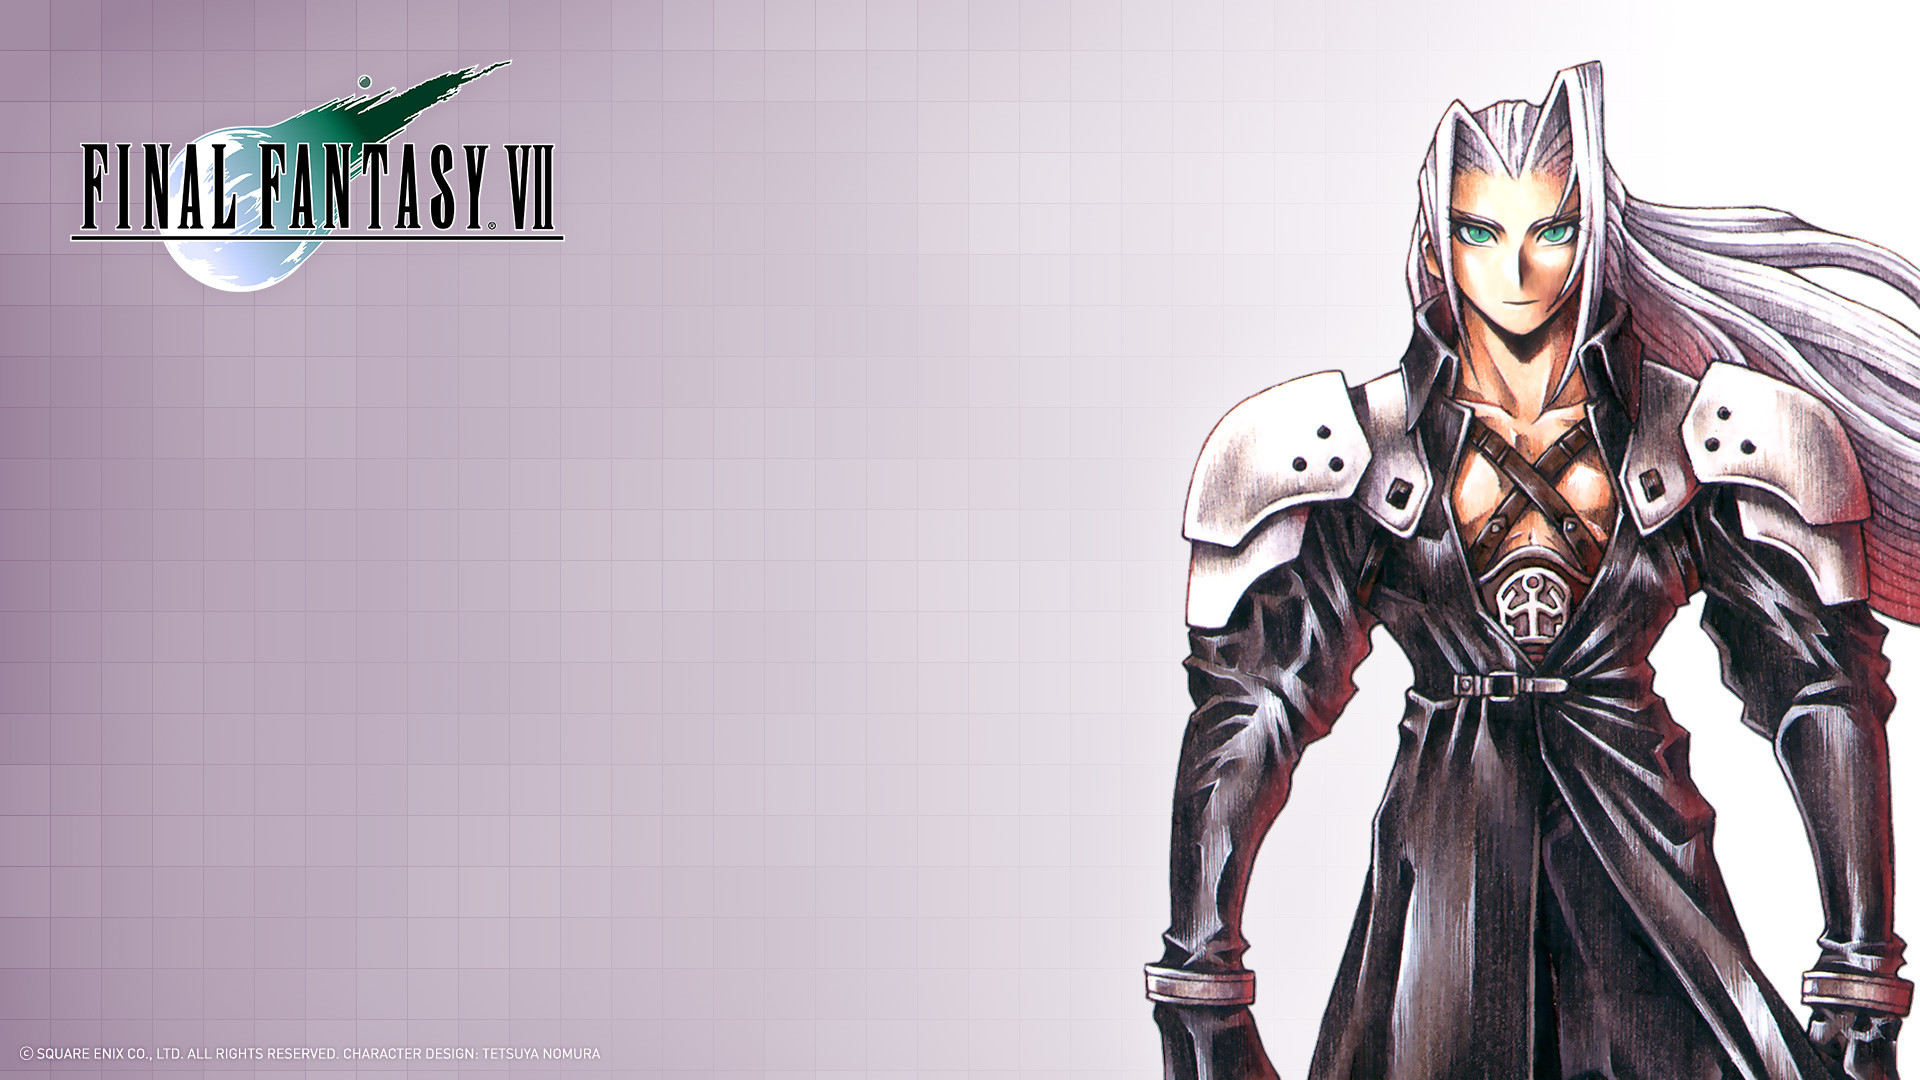 1920x1080 Final Fantasy VII HD Wallpaper | Background Image |  | ID:270483 -  Wallpaper Abyss